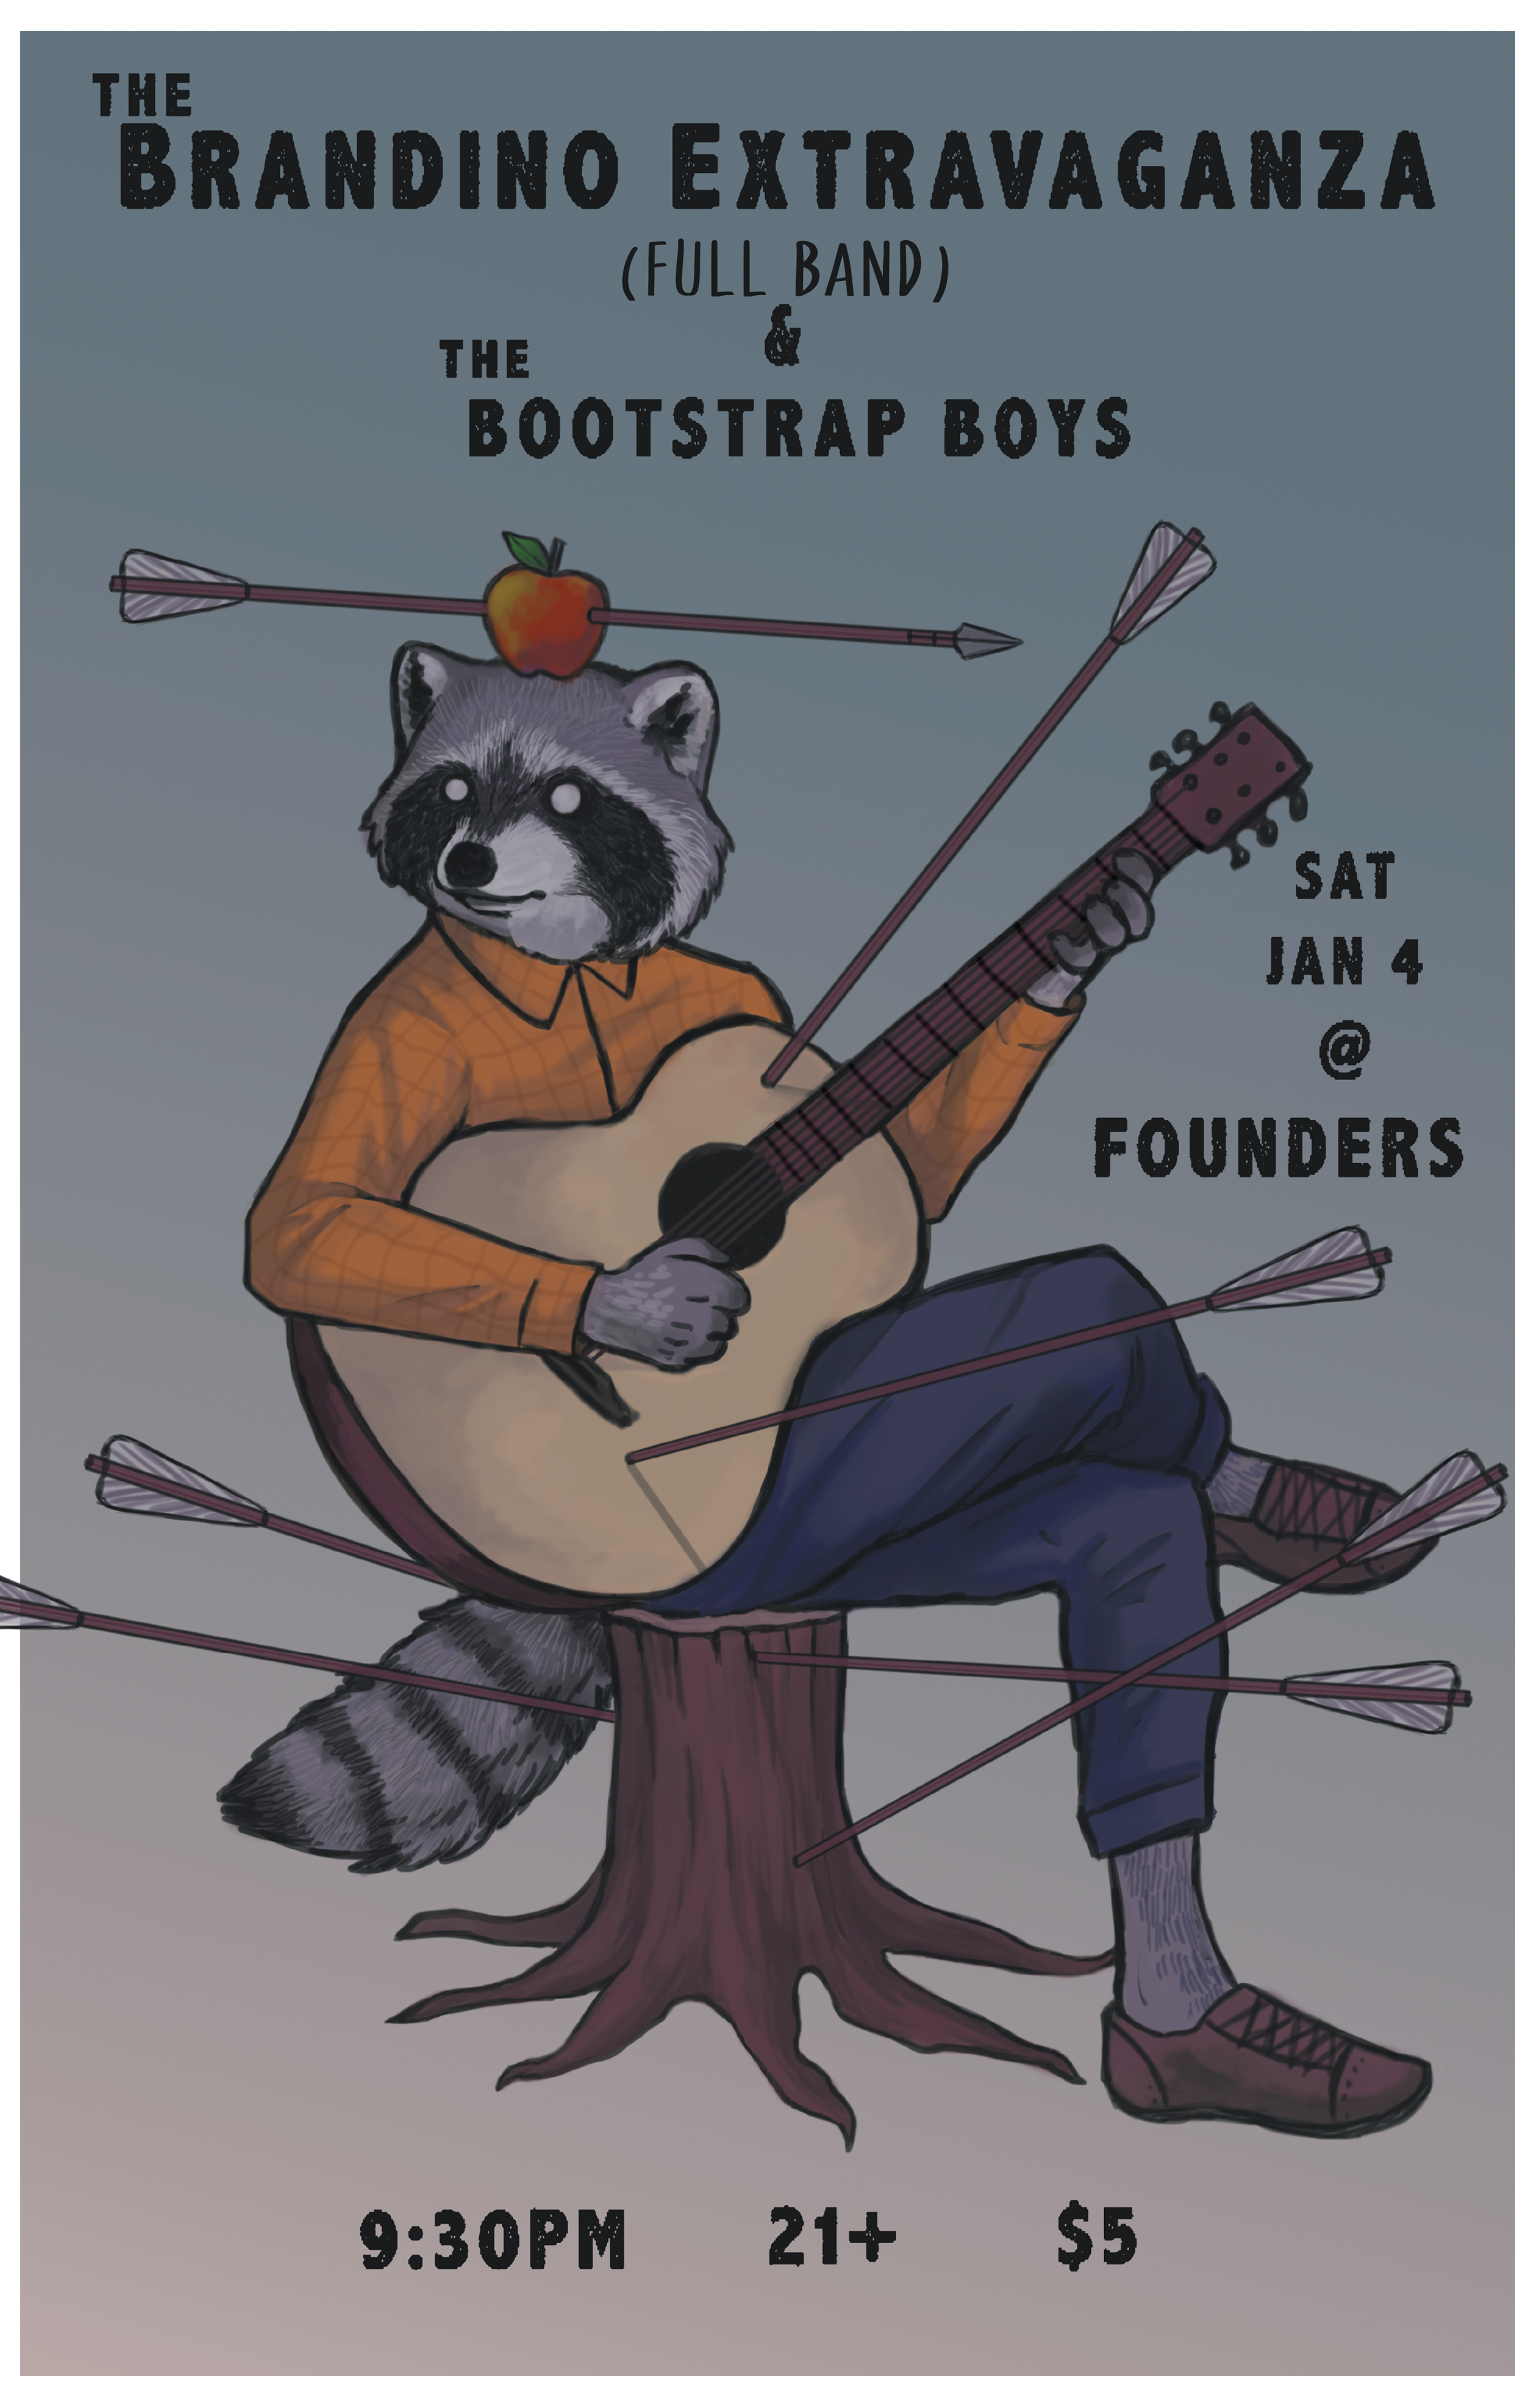 The Brandino Extravaganza & The Bootstrap Boys event poster